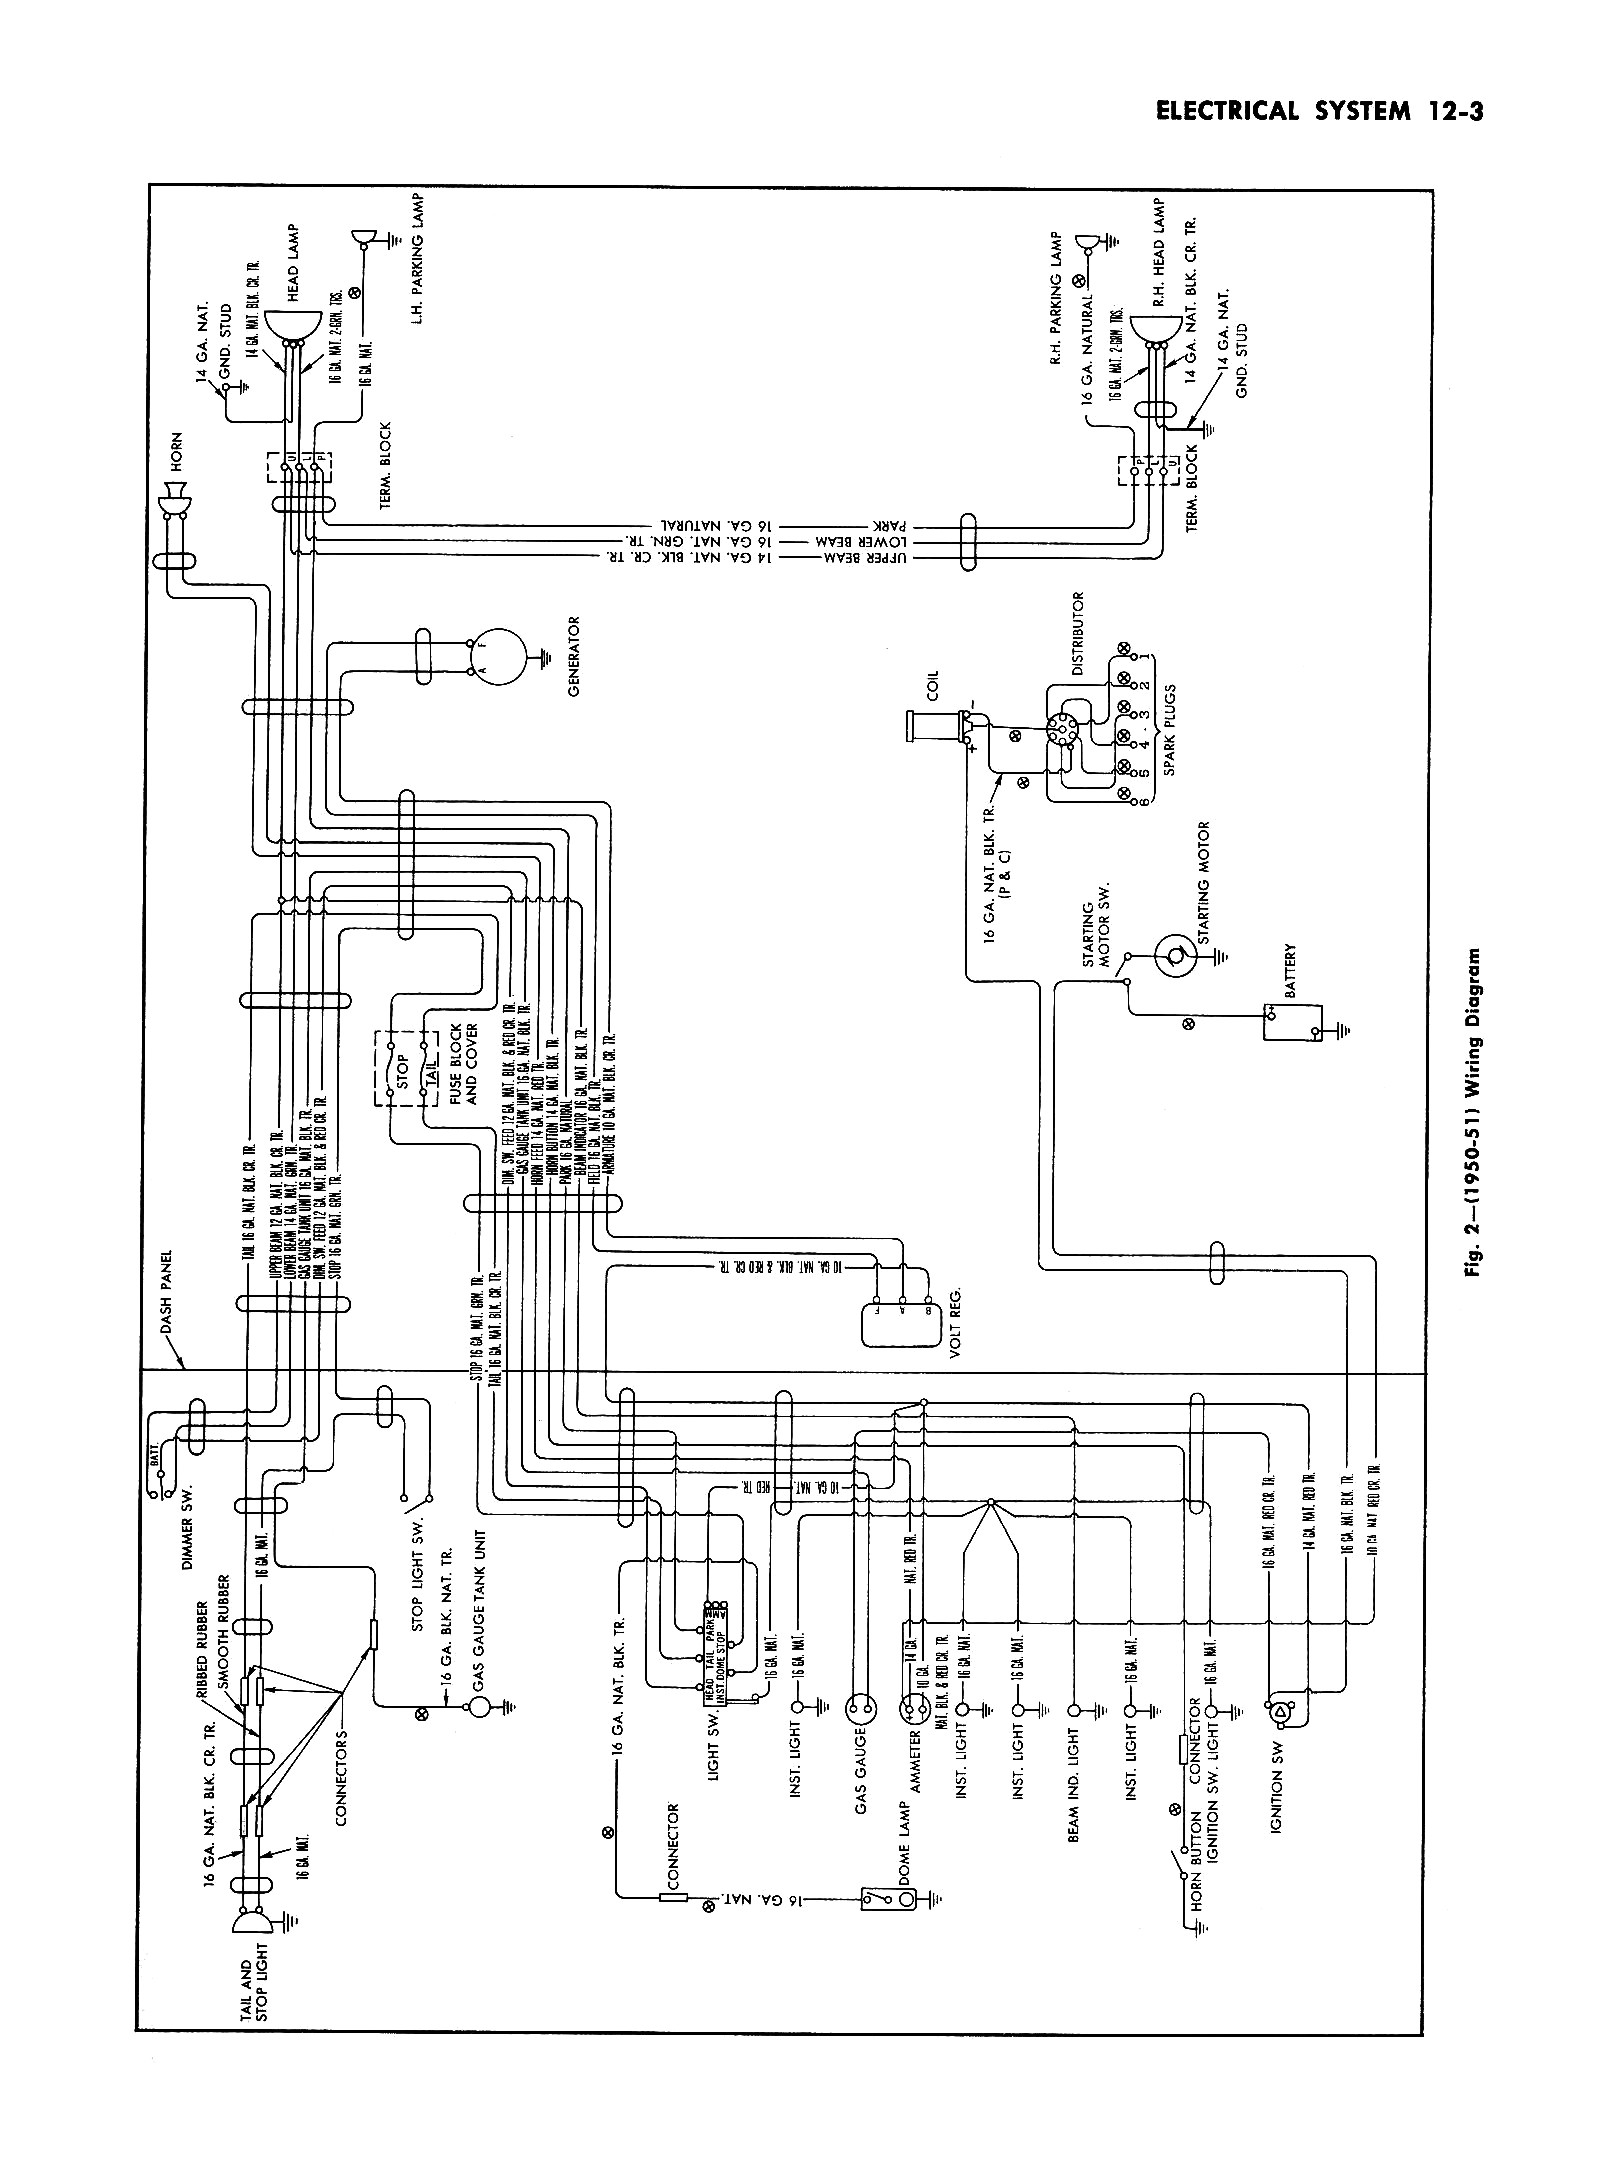 Wiring on 1964 cadillac deville wiring diagrams